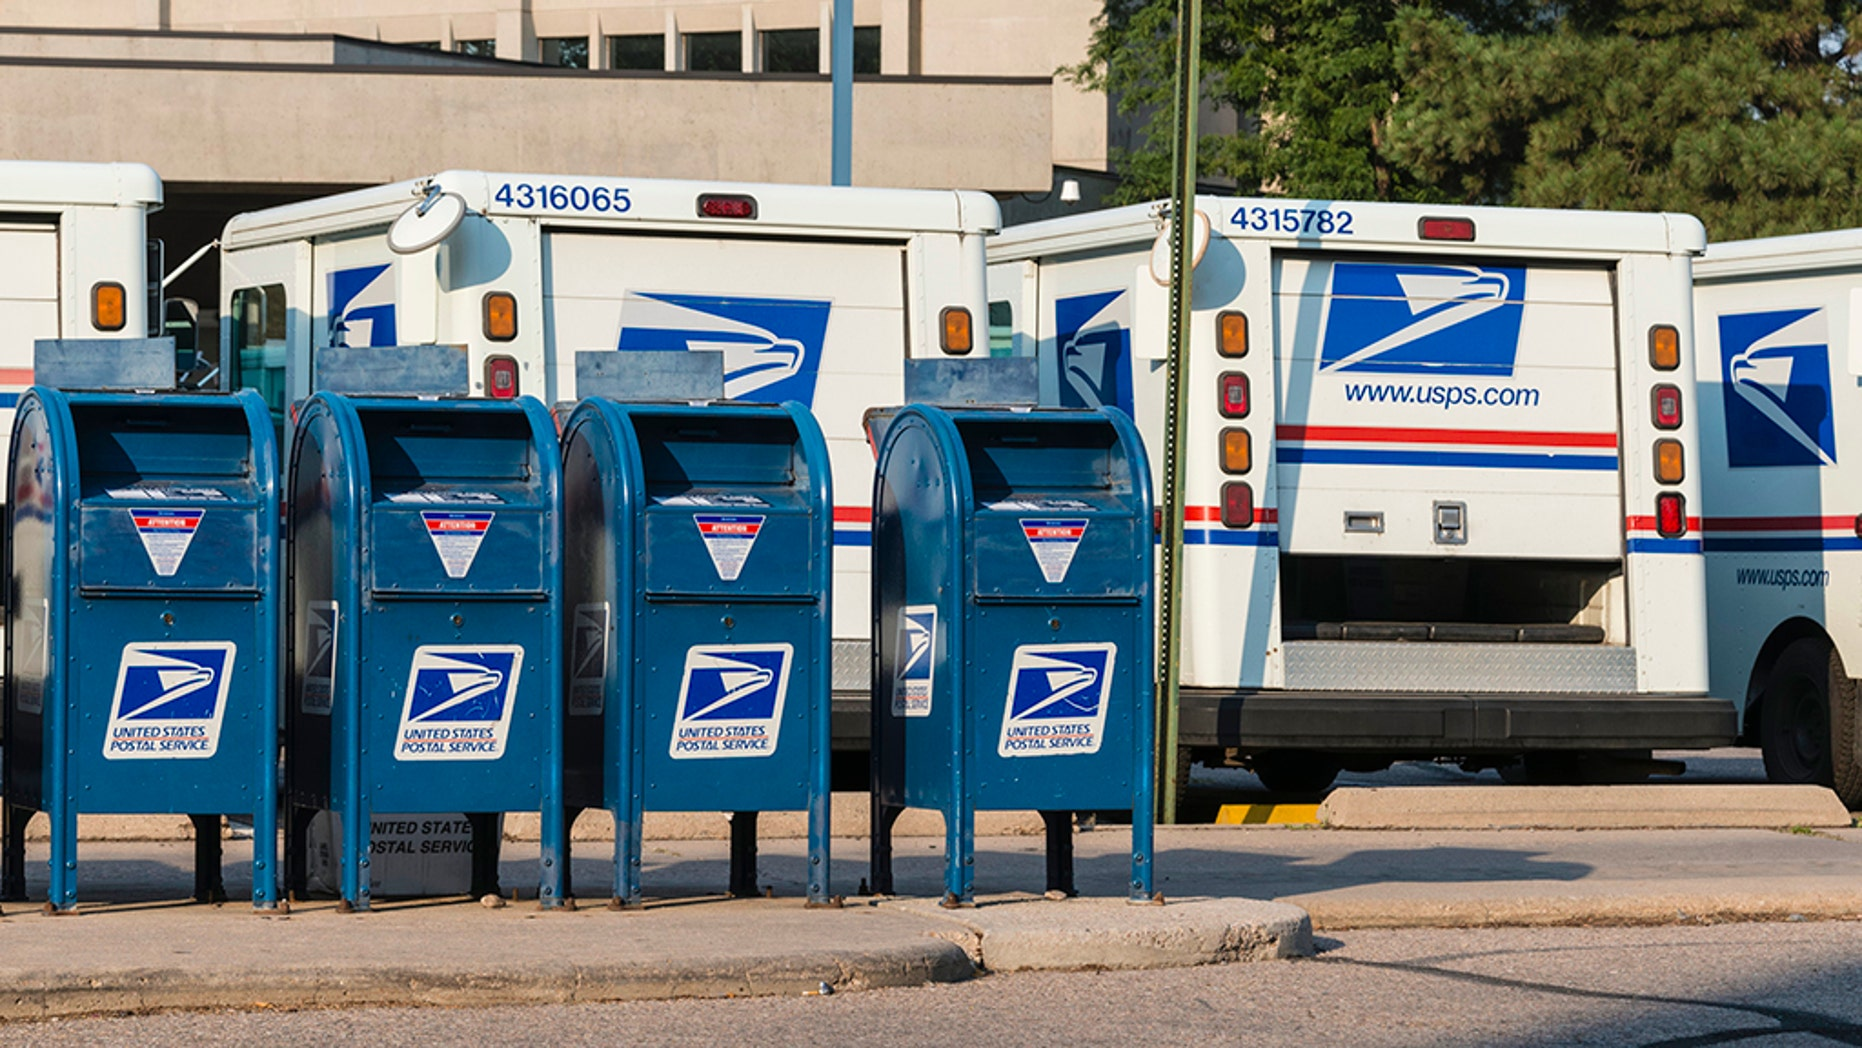 A man dressed as a U.S. Postal Service worker opened fire on two Chicago residents Thursday, police say.